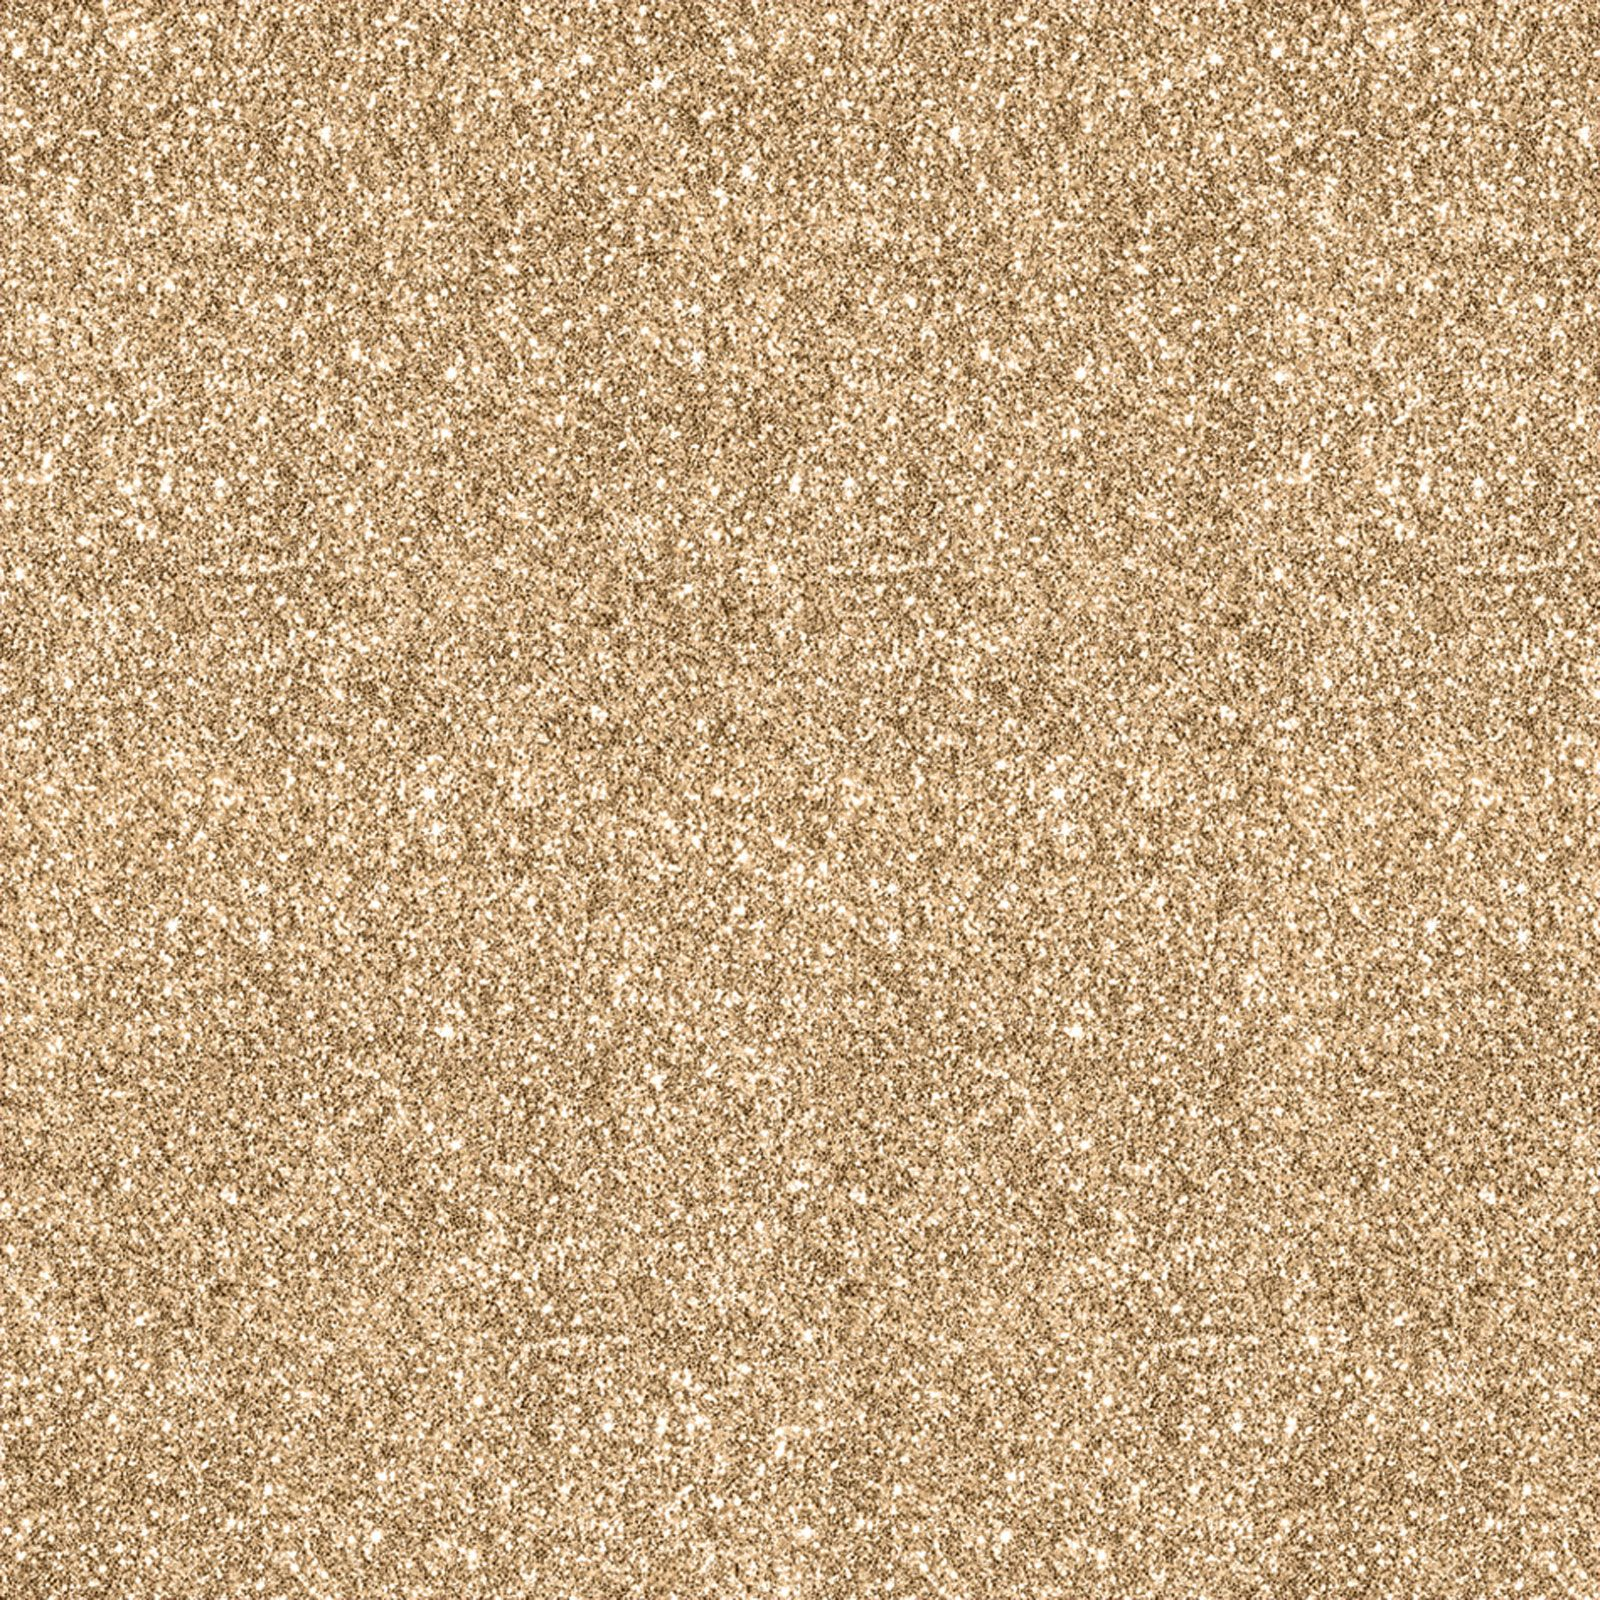 Textured Sparkle Wallpaper Gold Muriva Couture 701354 Glitter Ebay